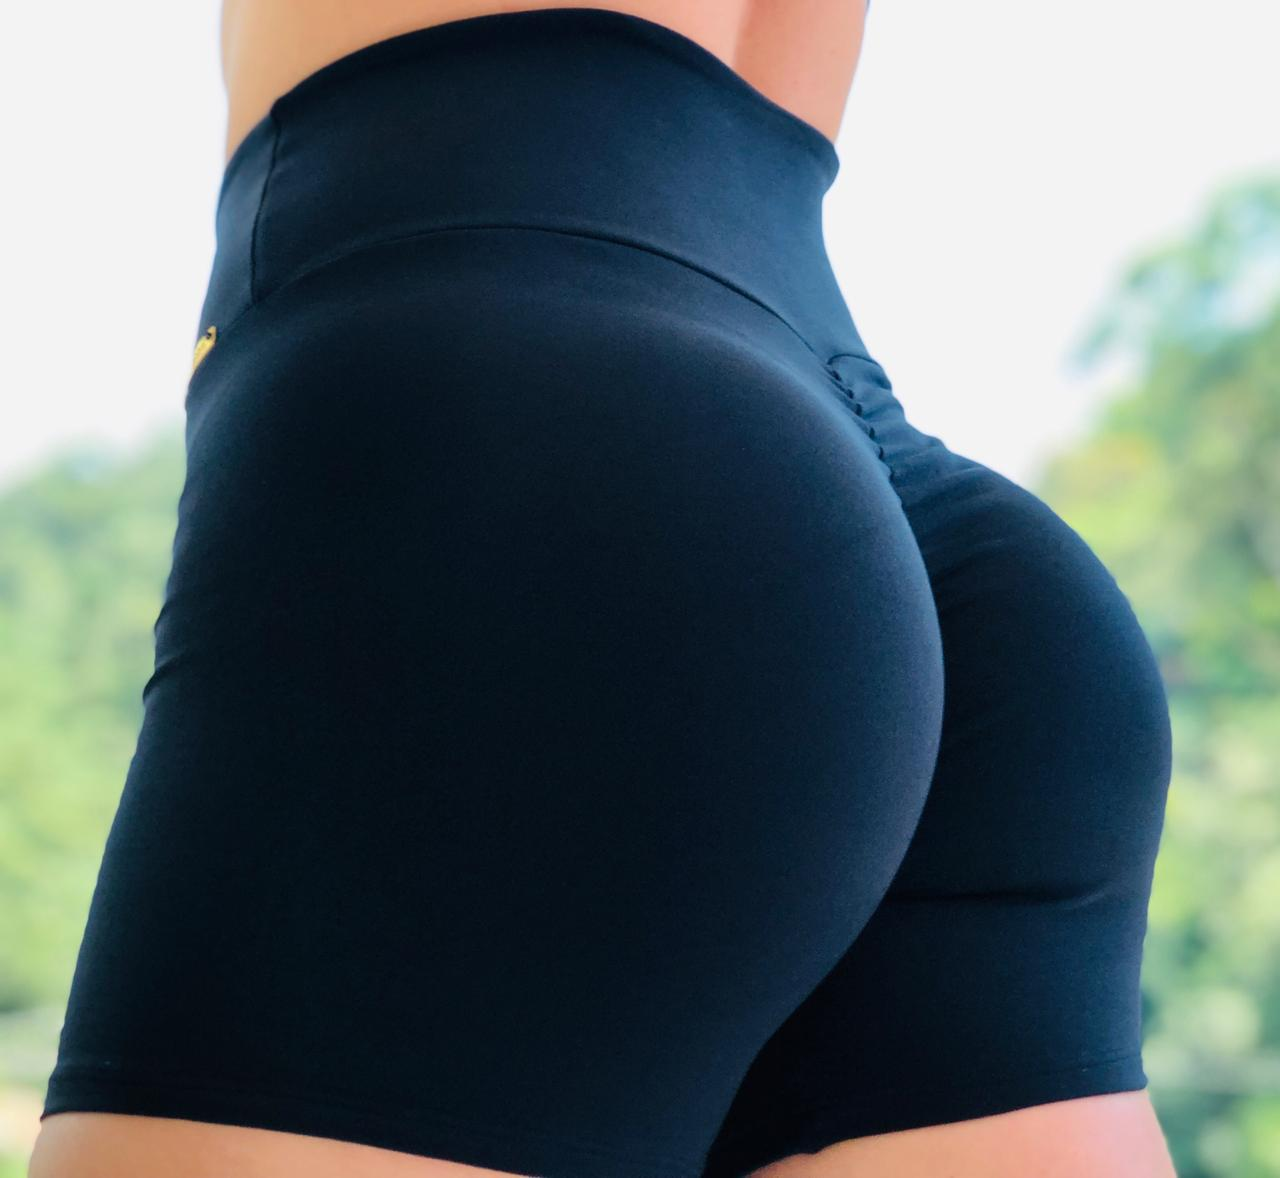 SHORTS BLACK ONE BUMBUM FRANZIR